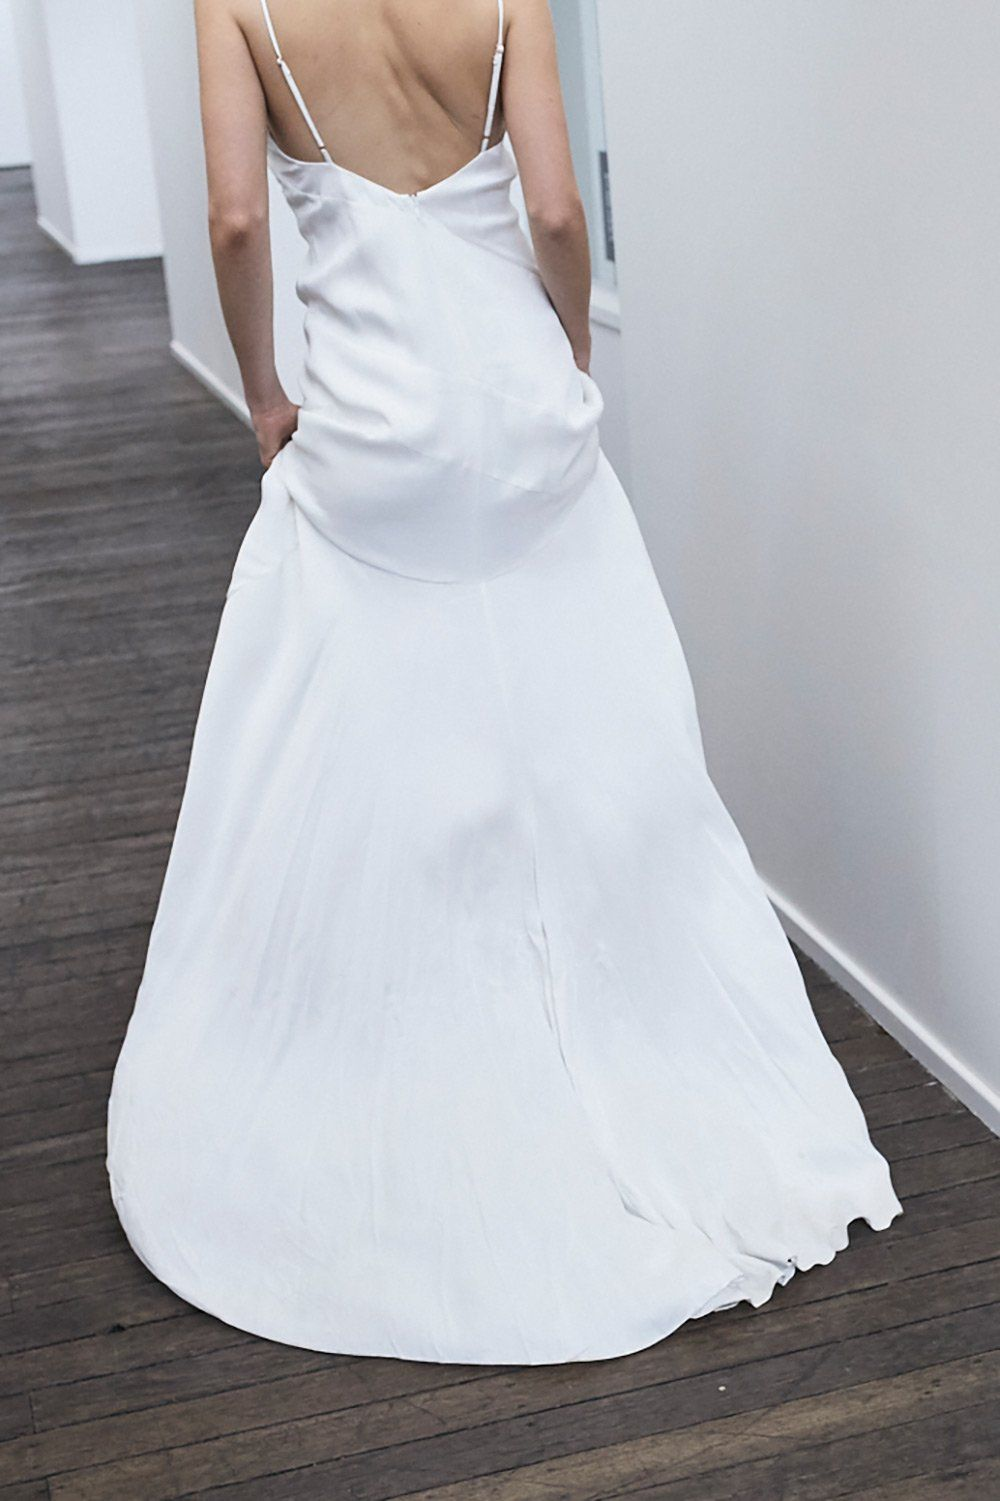 32bb21e1e5dc5d Romance Gown in White by MLM LABEL